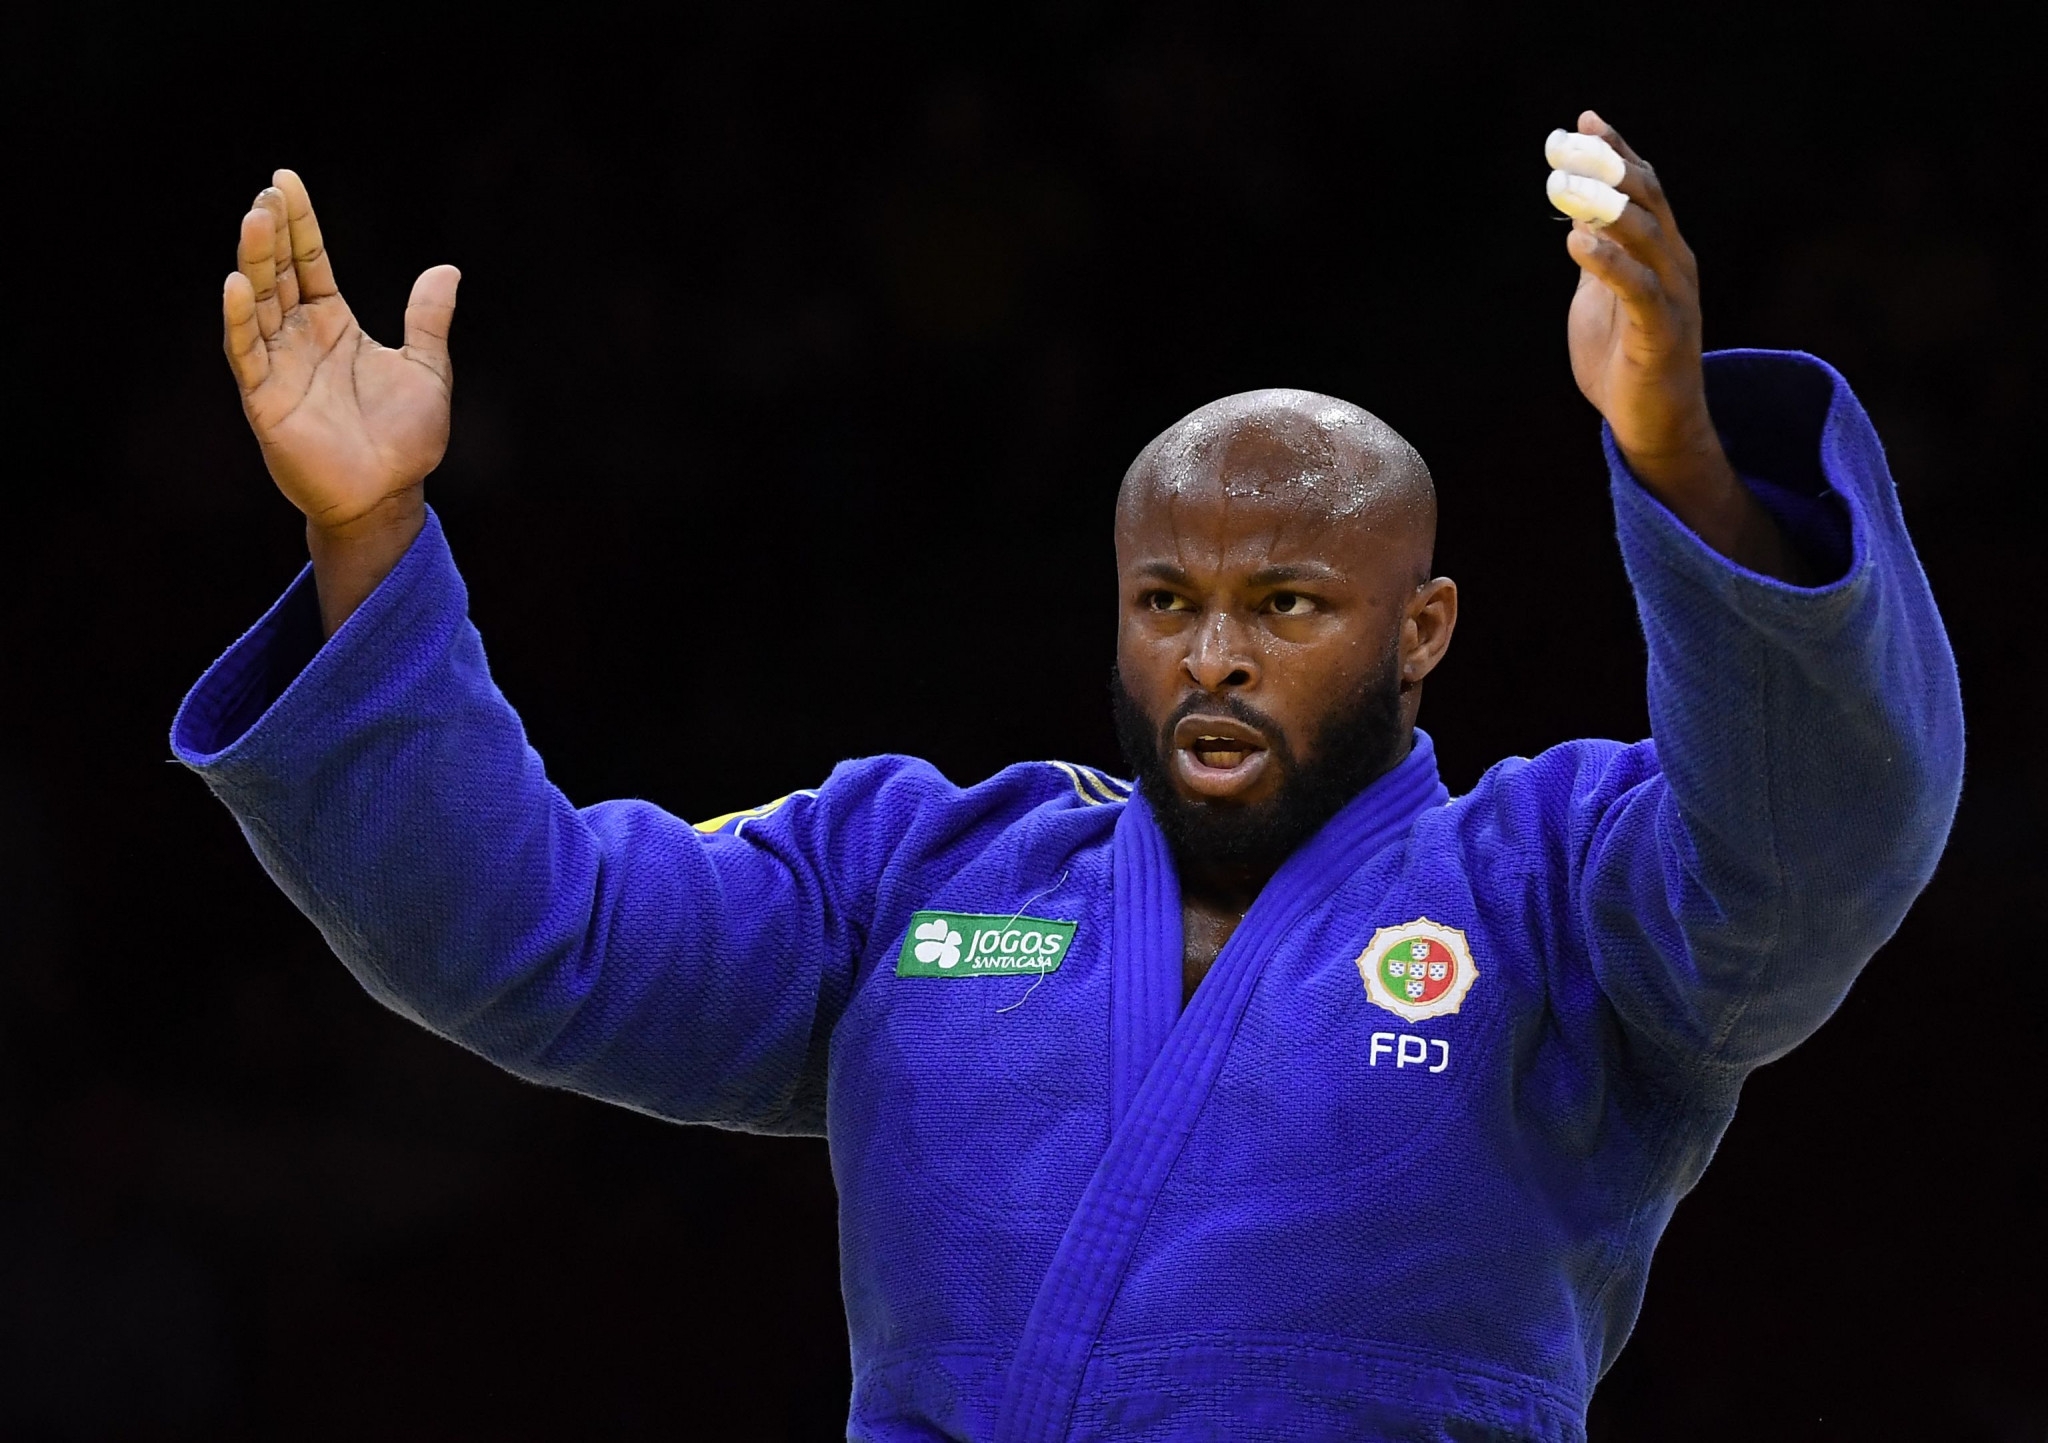 Jorge Fonseca retained his men's under-100kg title ©Getty Images